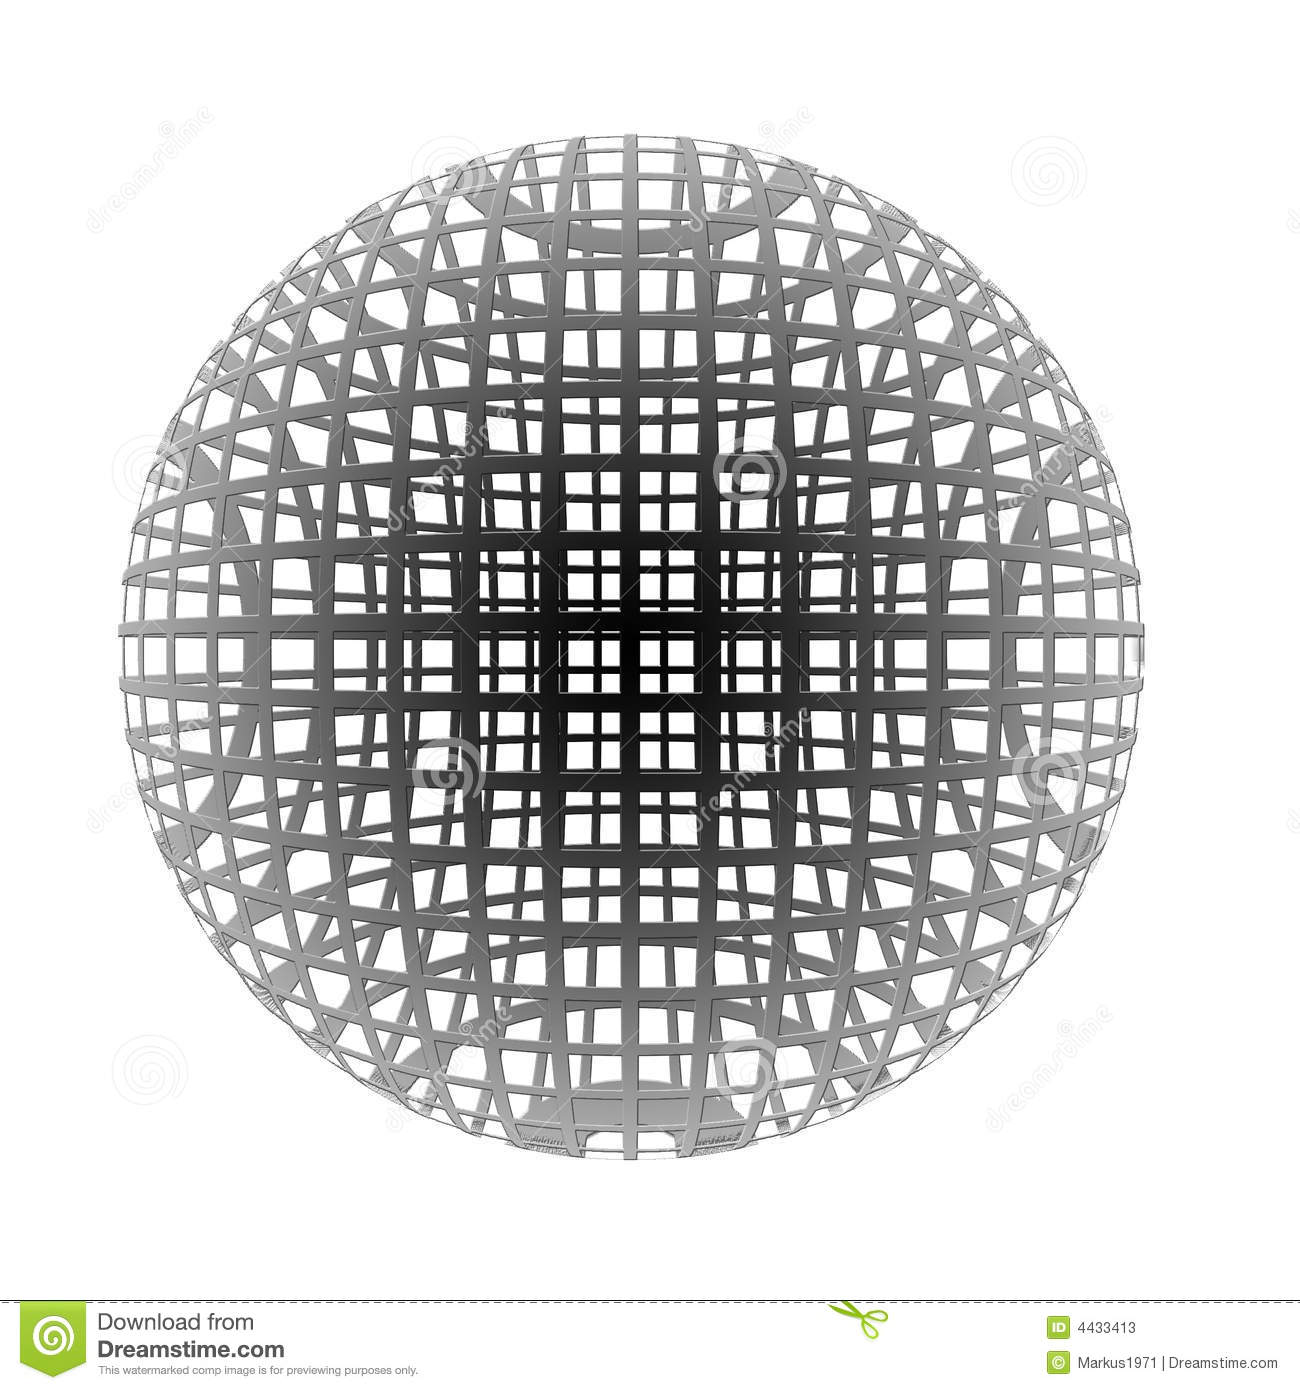 Spherical cage